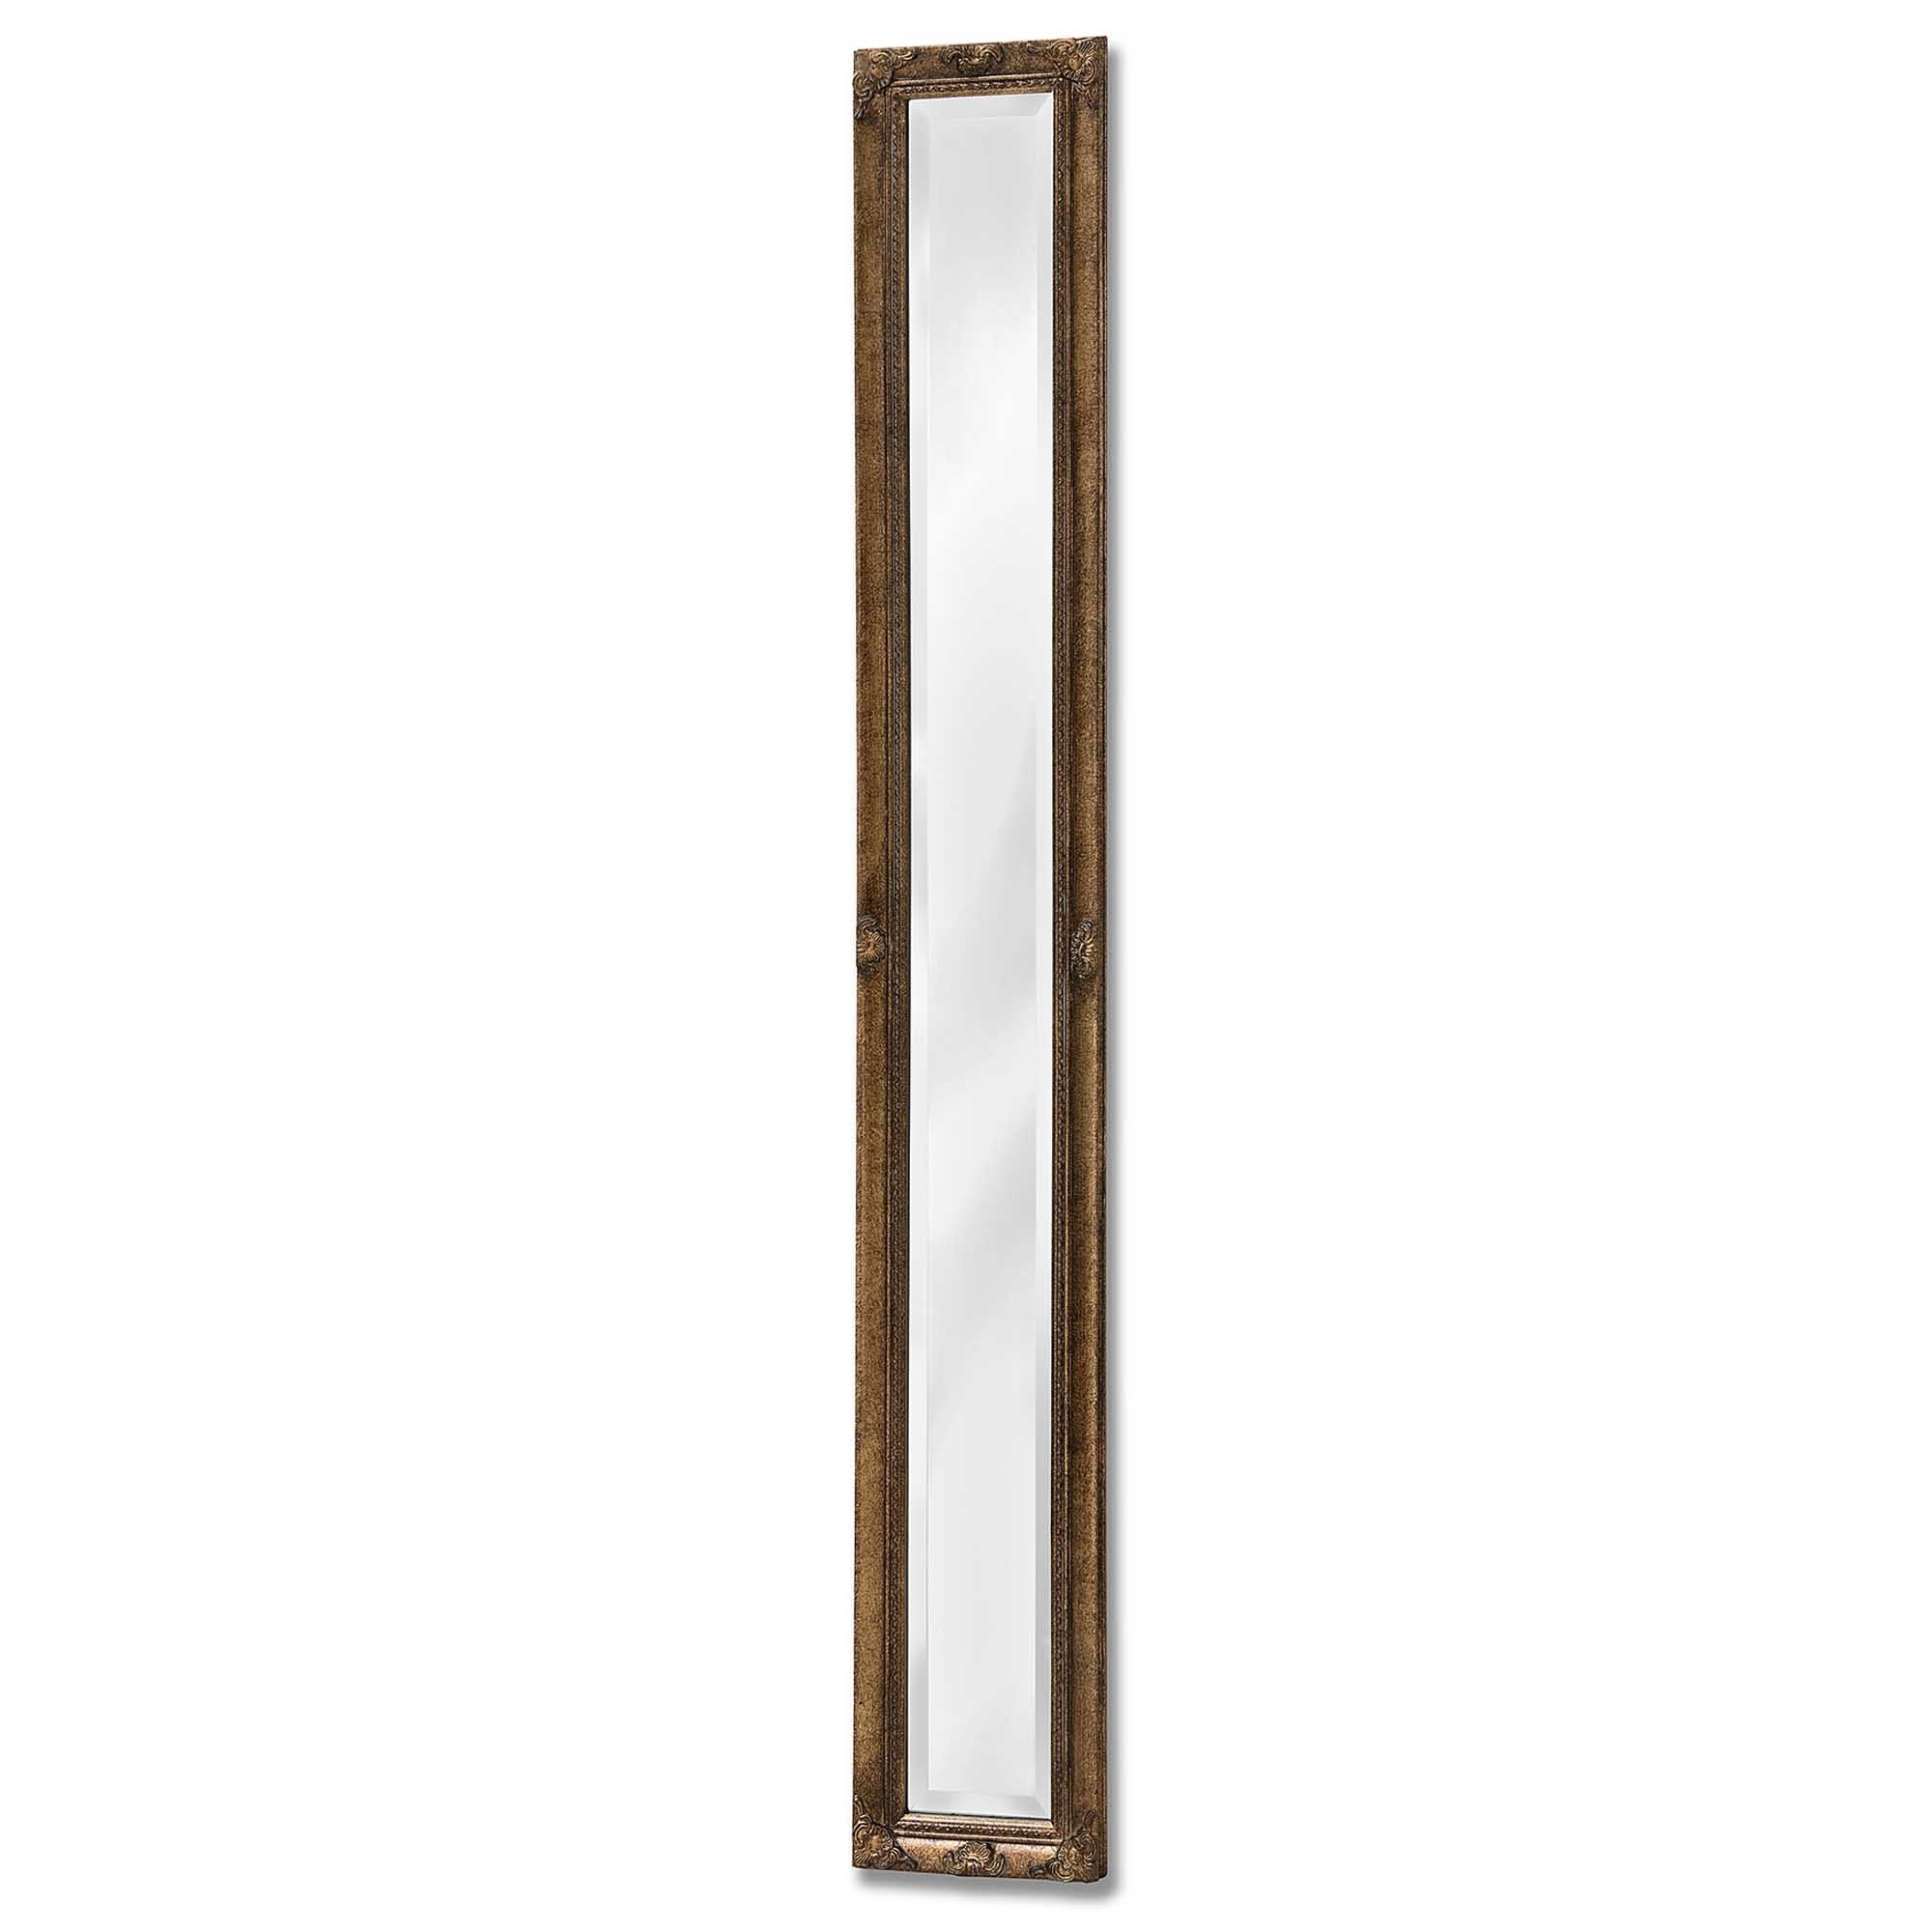 Antique french style gold narrow wall mirror homesdirect365 for Narrow decorative mirrors